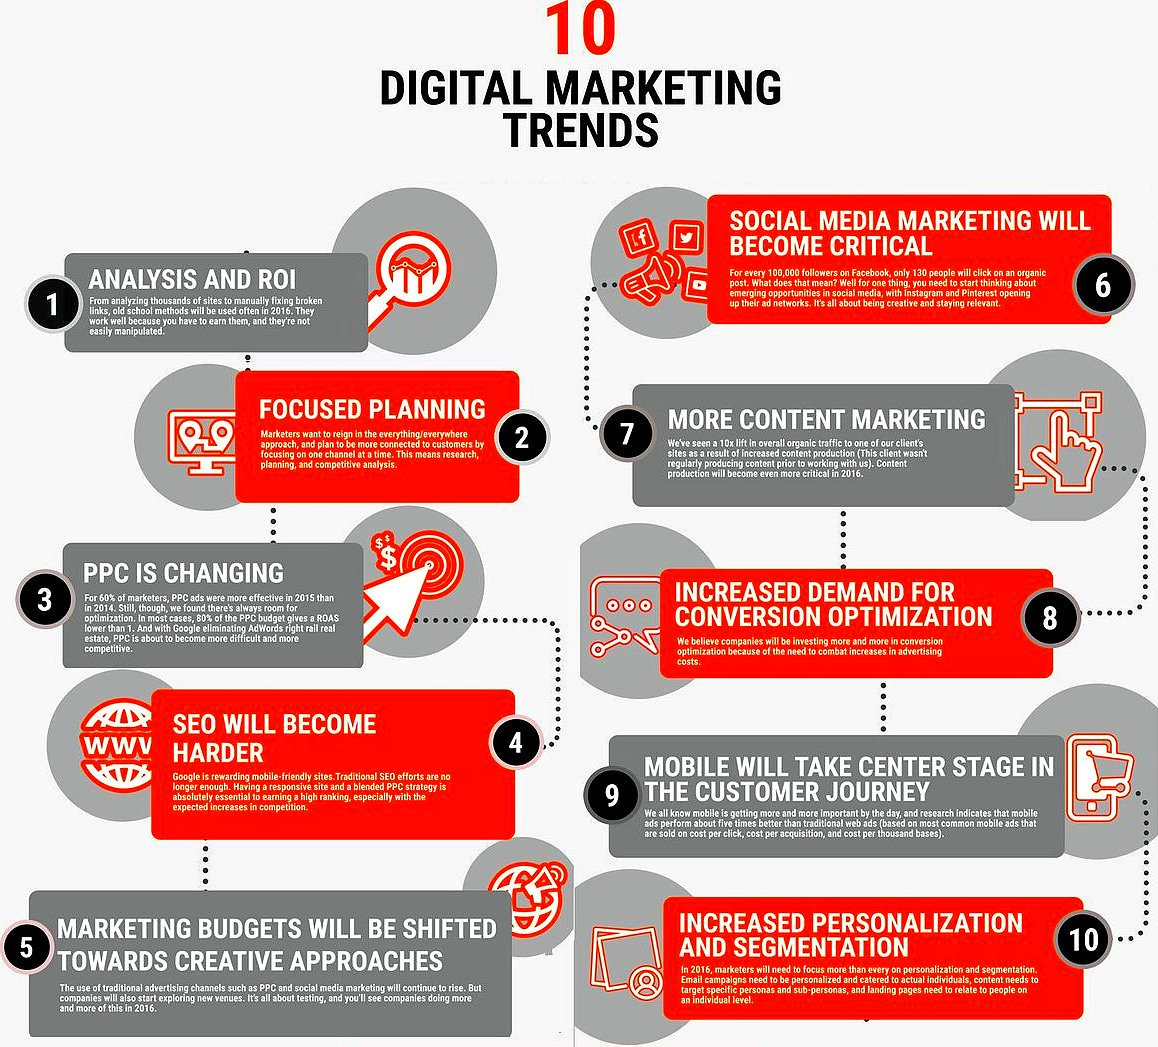 10 Major Digital #Marketing Trends to Pay Attention for 2017 [Infographic]  #DigitalMarketing #Analytics #SocialMedia #SMM #CRO #SEO #Mobile https://t.co/FYW5R9XBwO